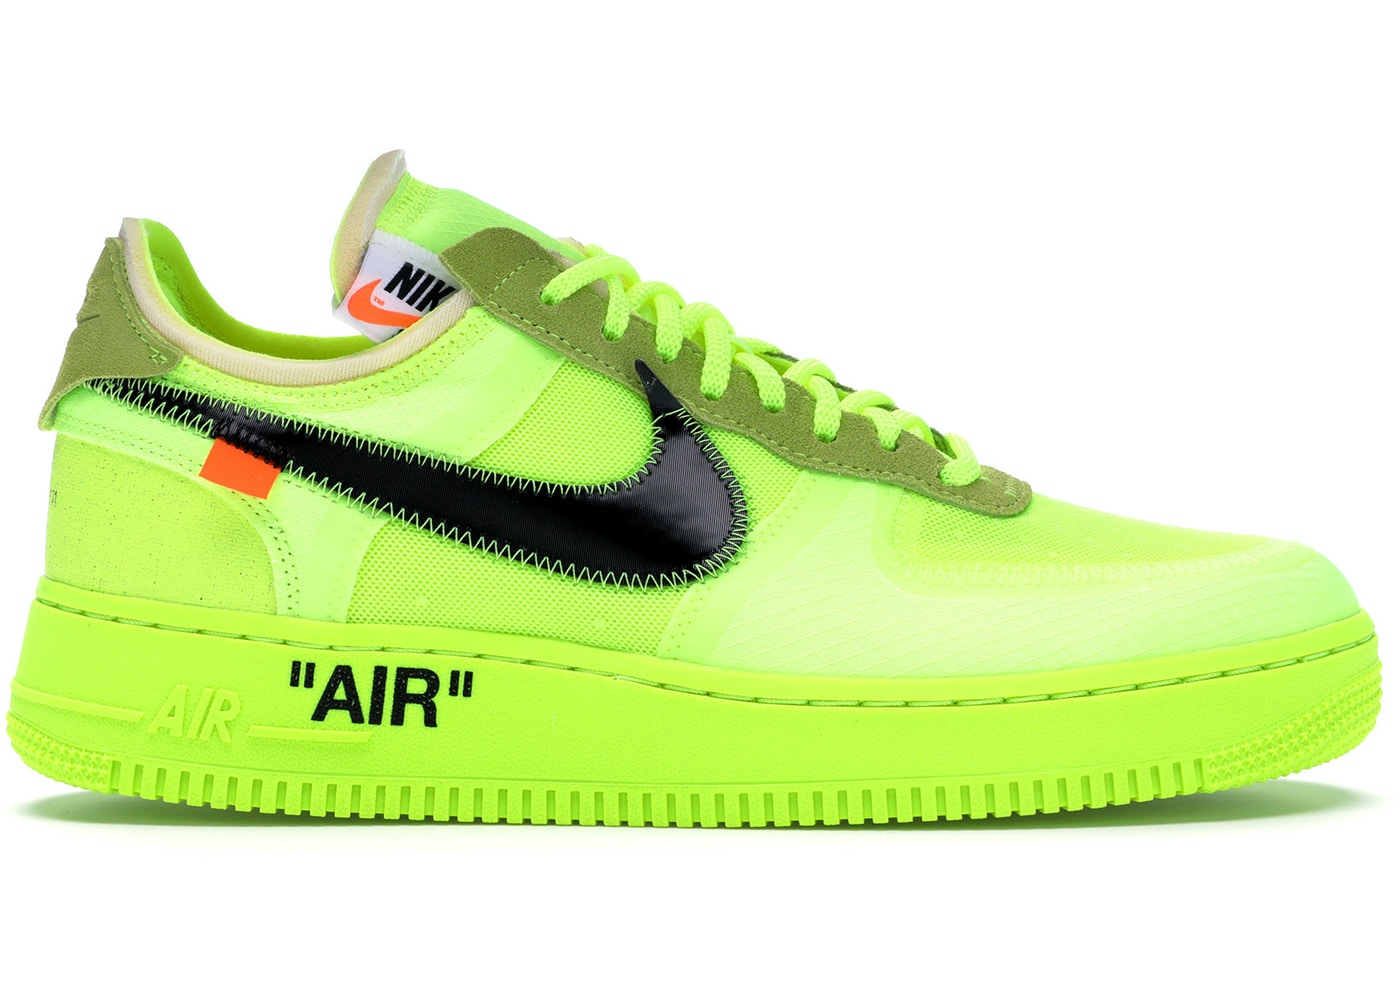 low priced b9783 edb5c Air Force 1 Low Off-White Volt